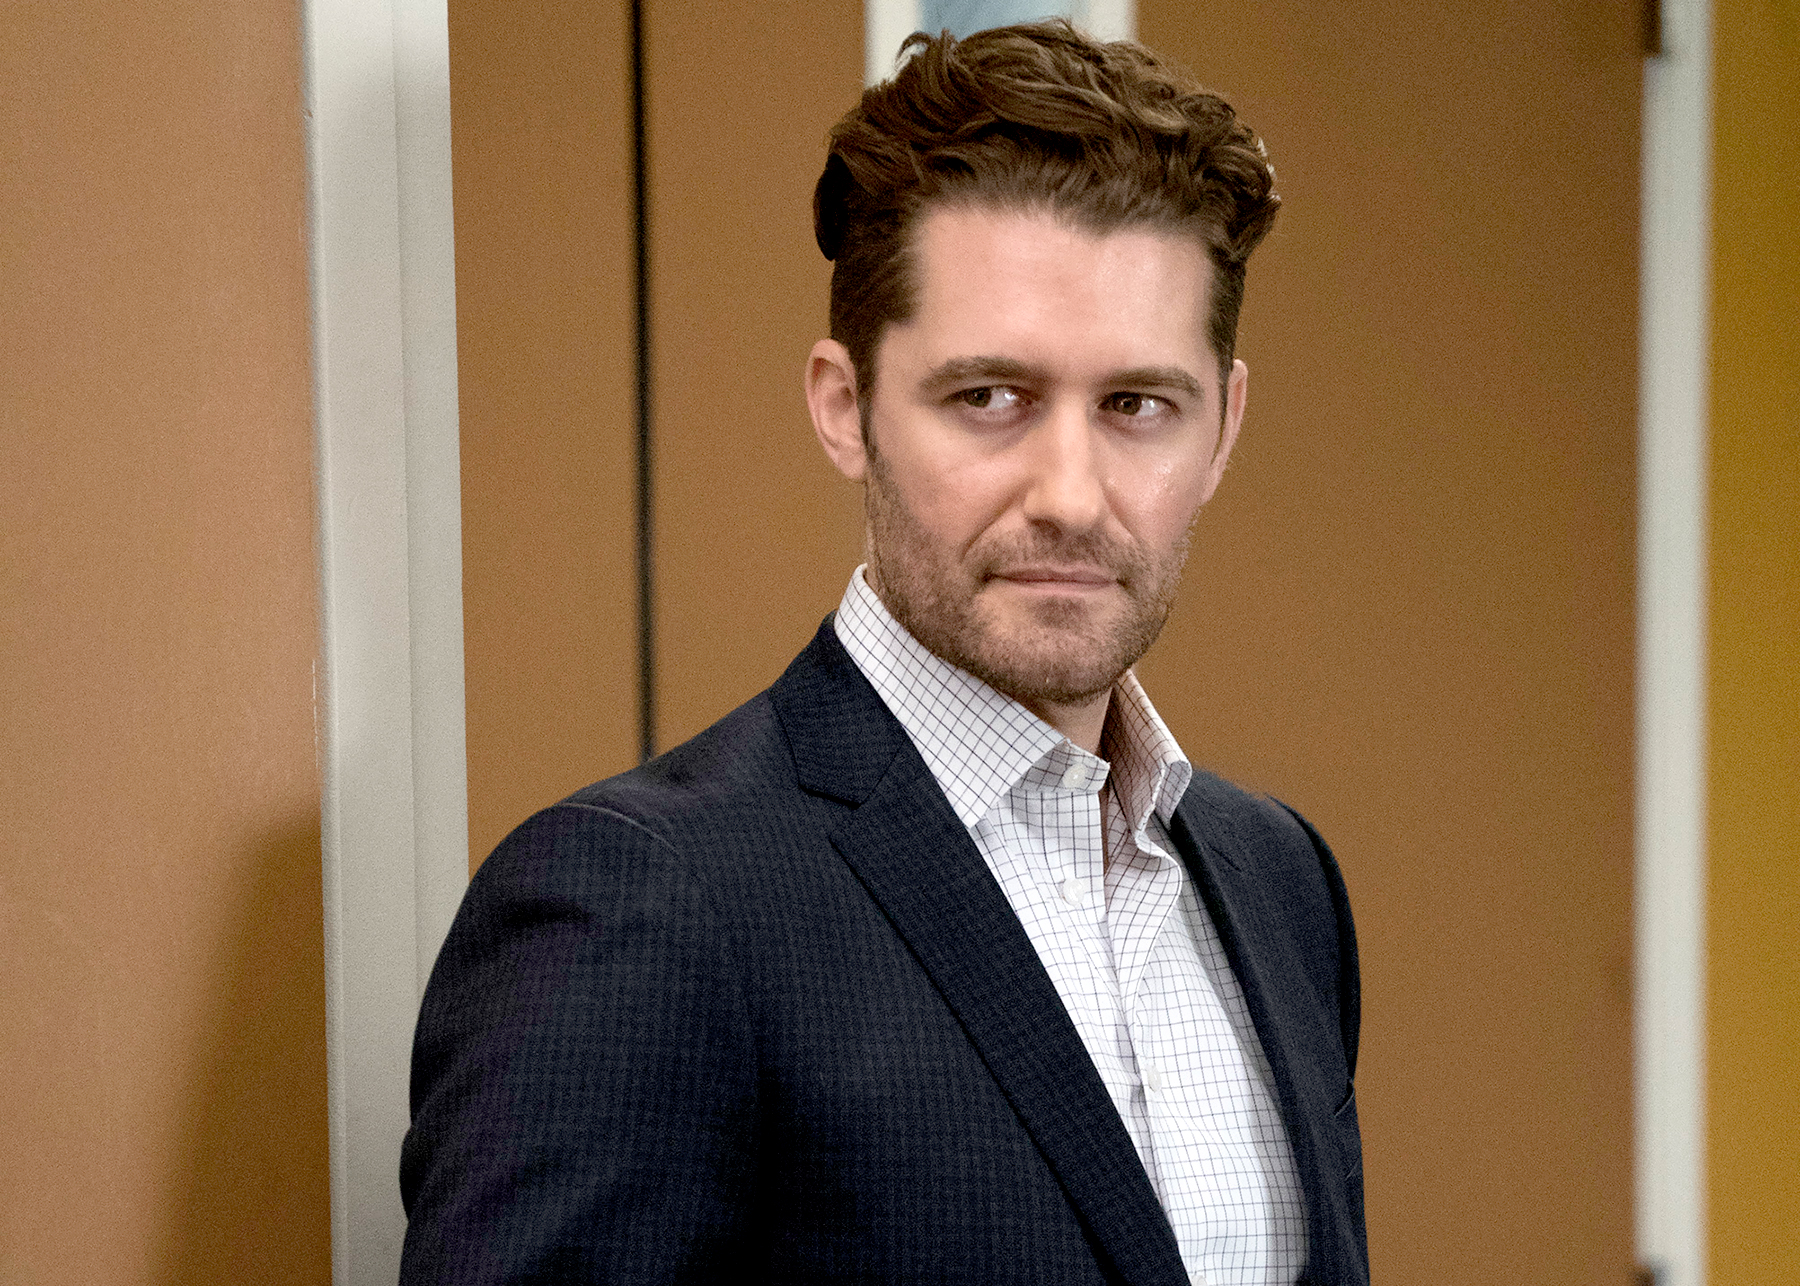 Matthew Morrison on Grey's Anatomy - Matthew Morrison on Grey's Anatomy